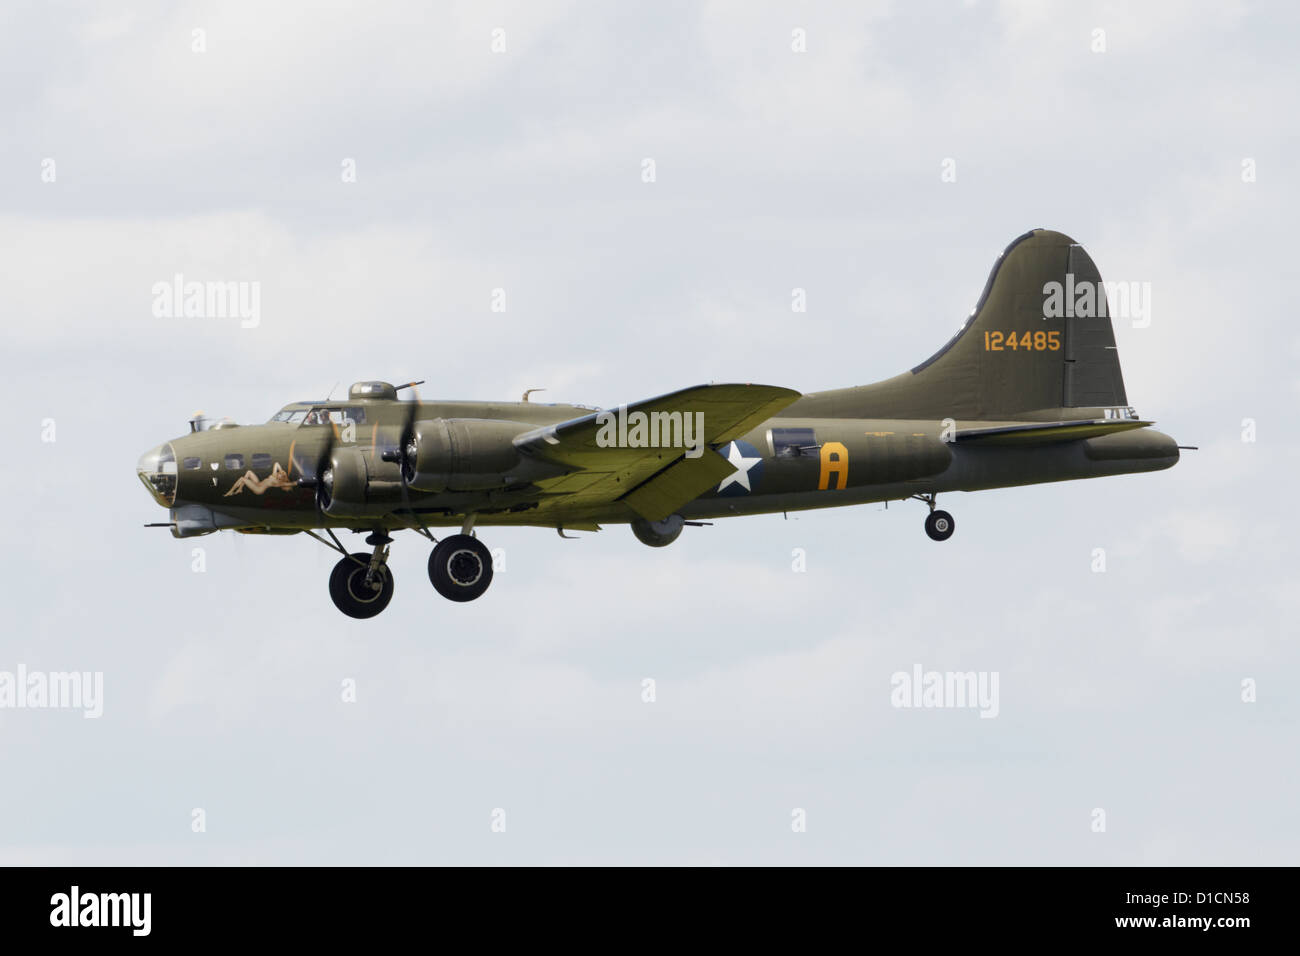 Boeing B-17G Flying Fortress flying during an air show Stock Photo